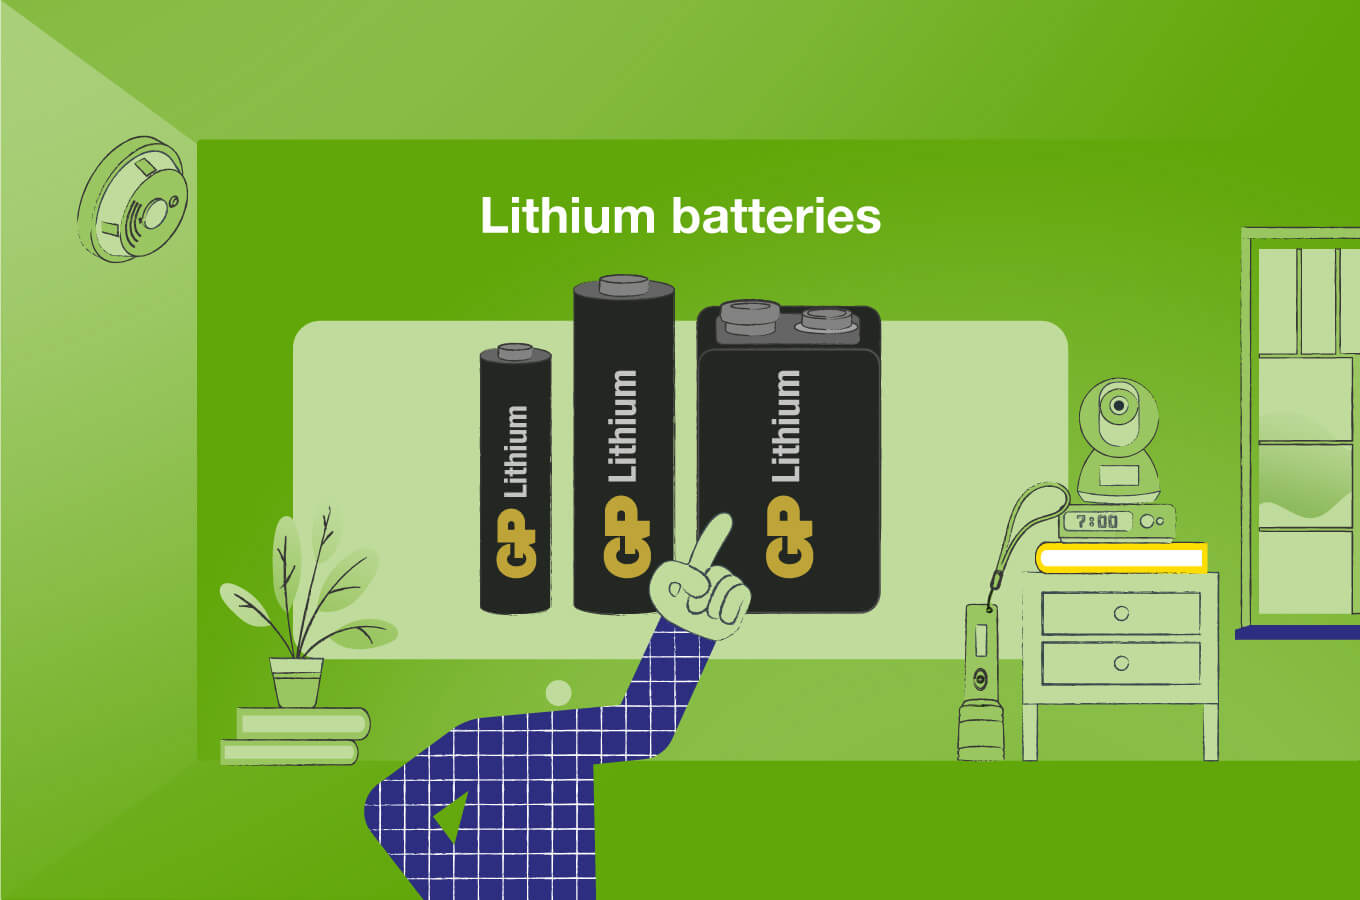 power up your battery knowledge - lithium batteries